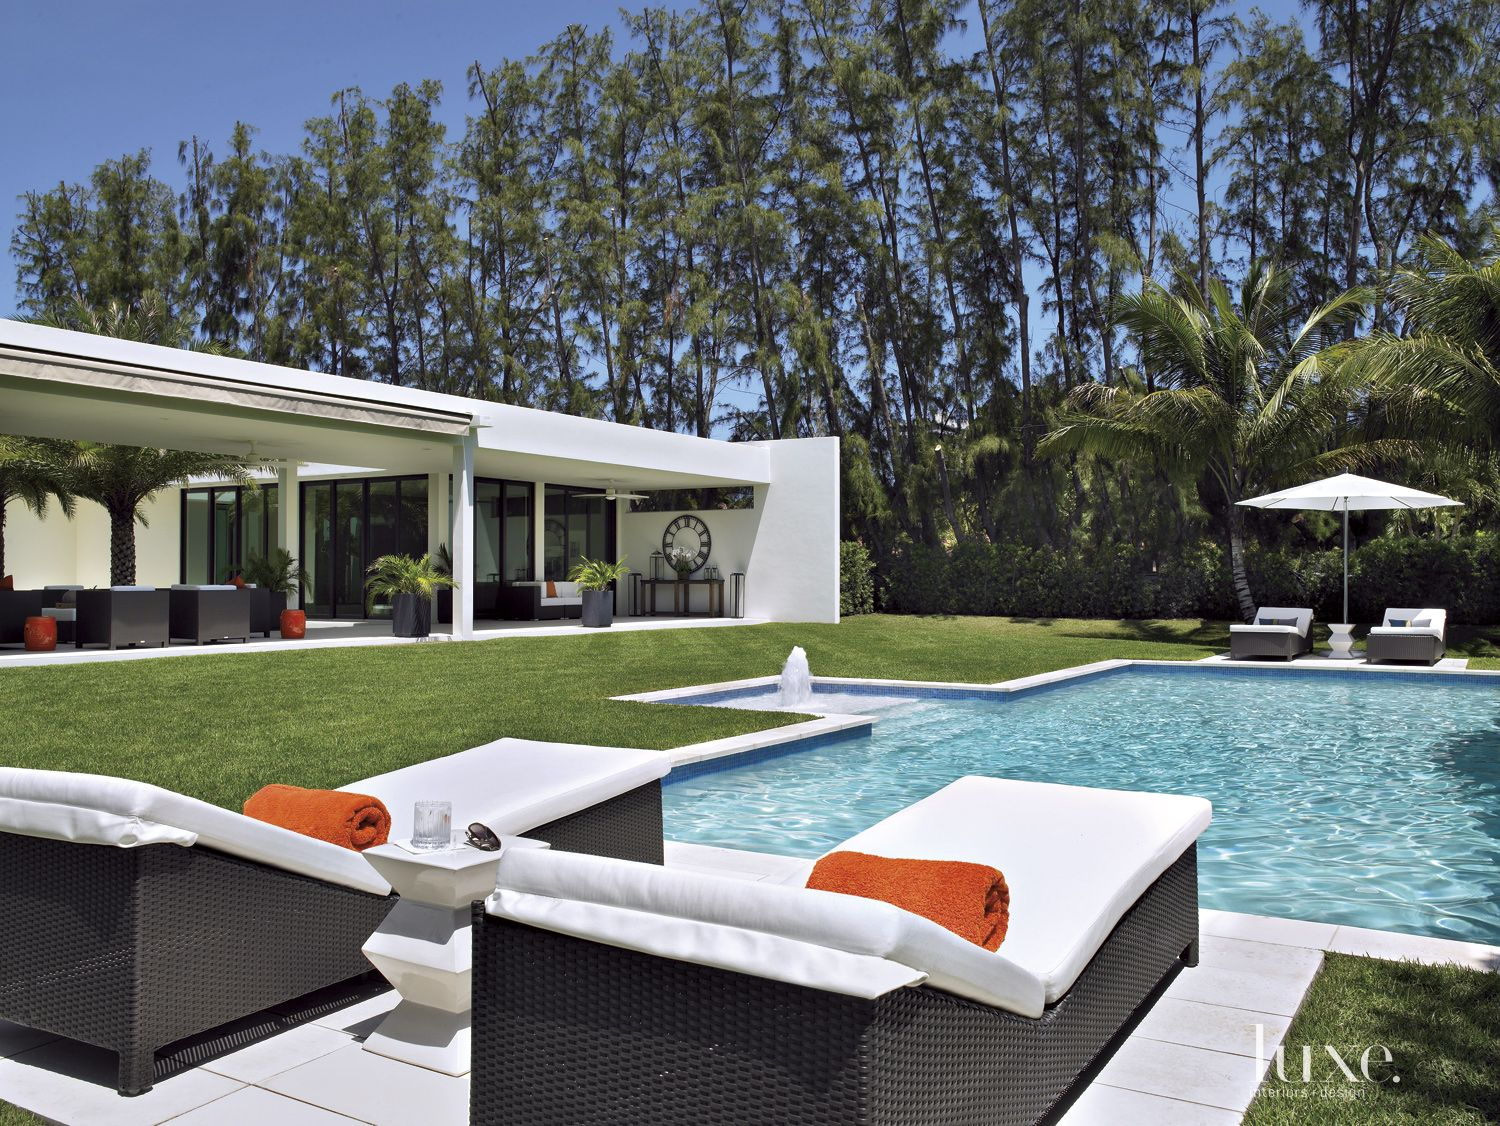 Contemporary Neutral Poolside with Wicker Furniture